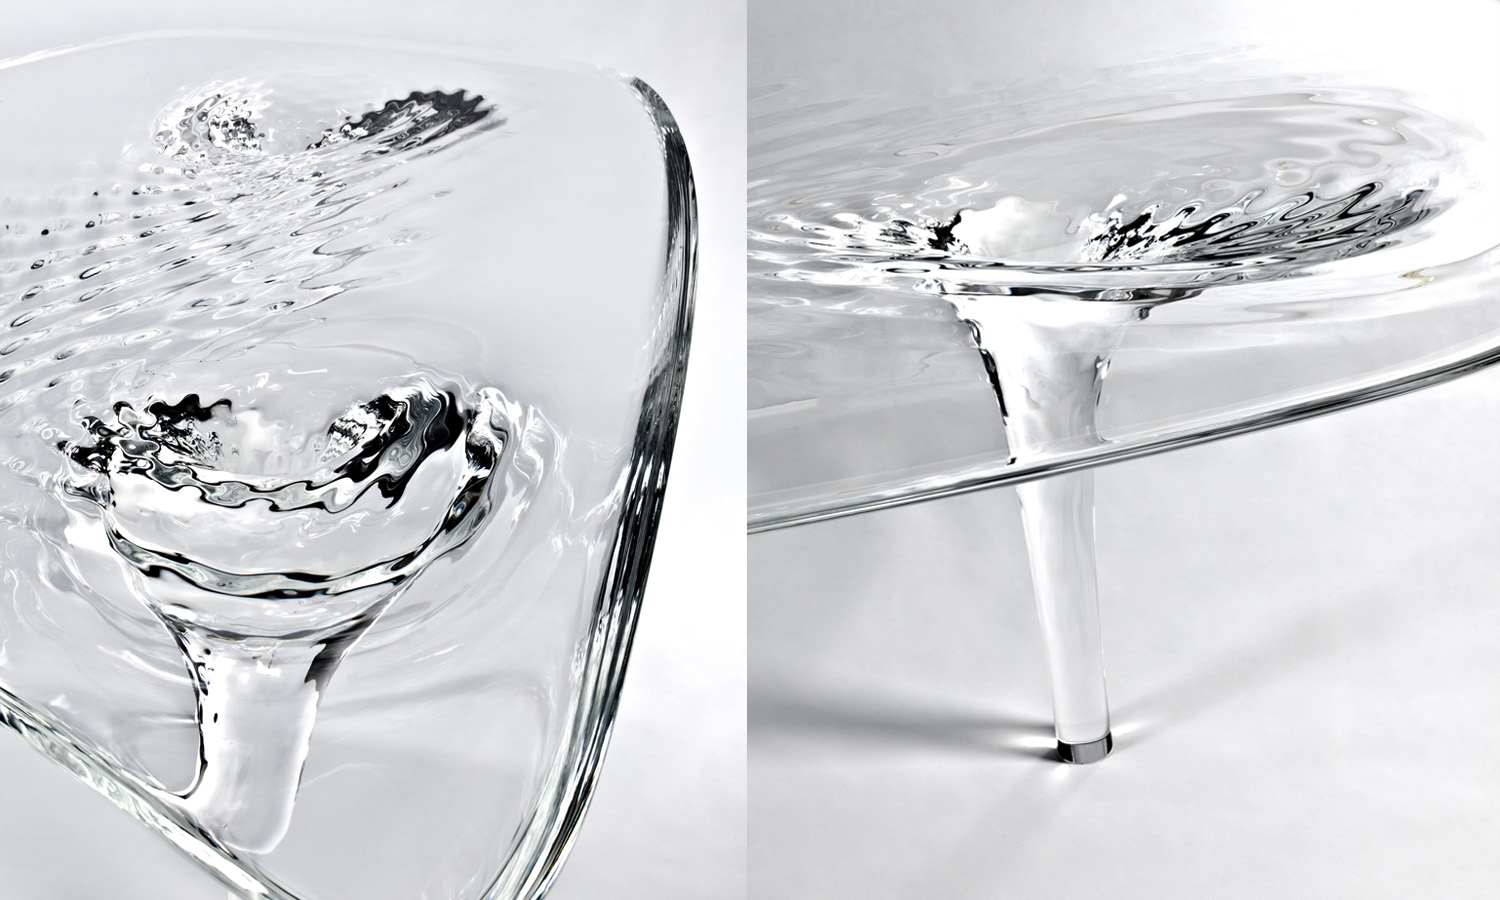 Yang rutherford global branding design and for Zaha hadid liquid glacial